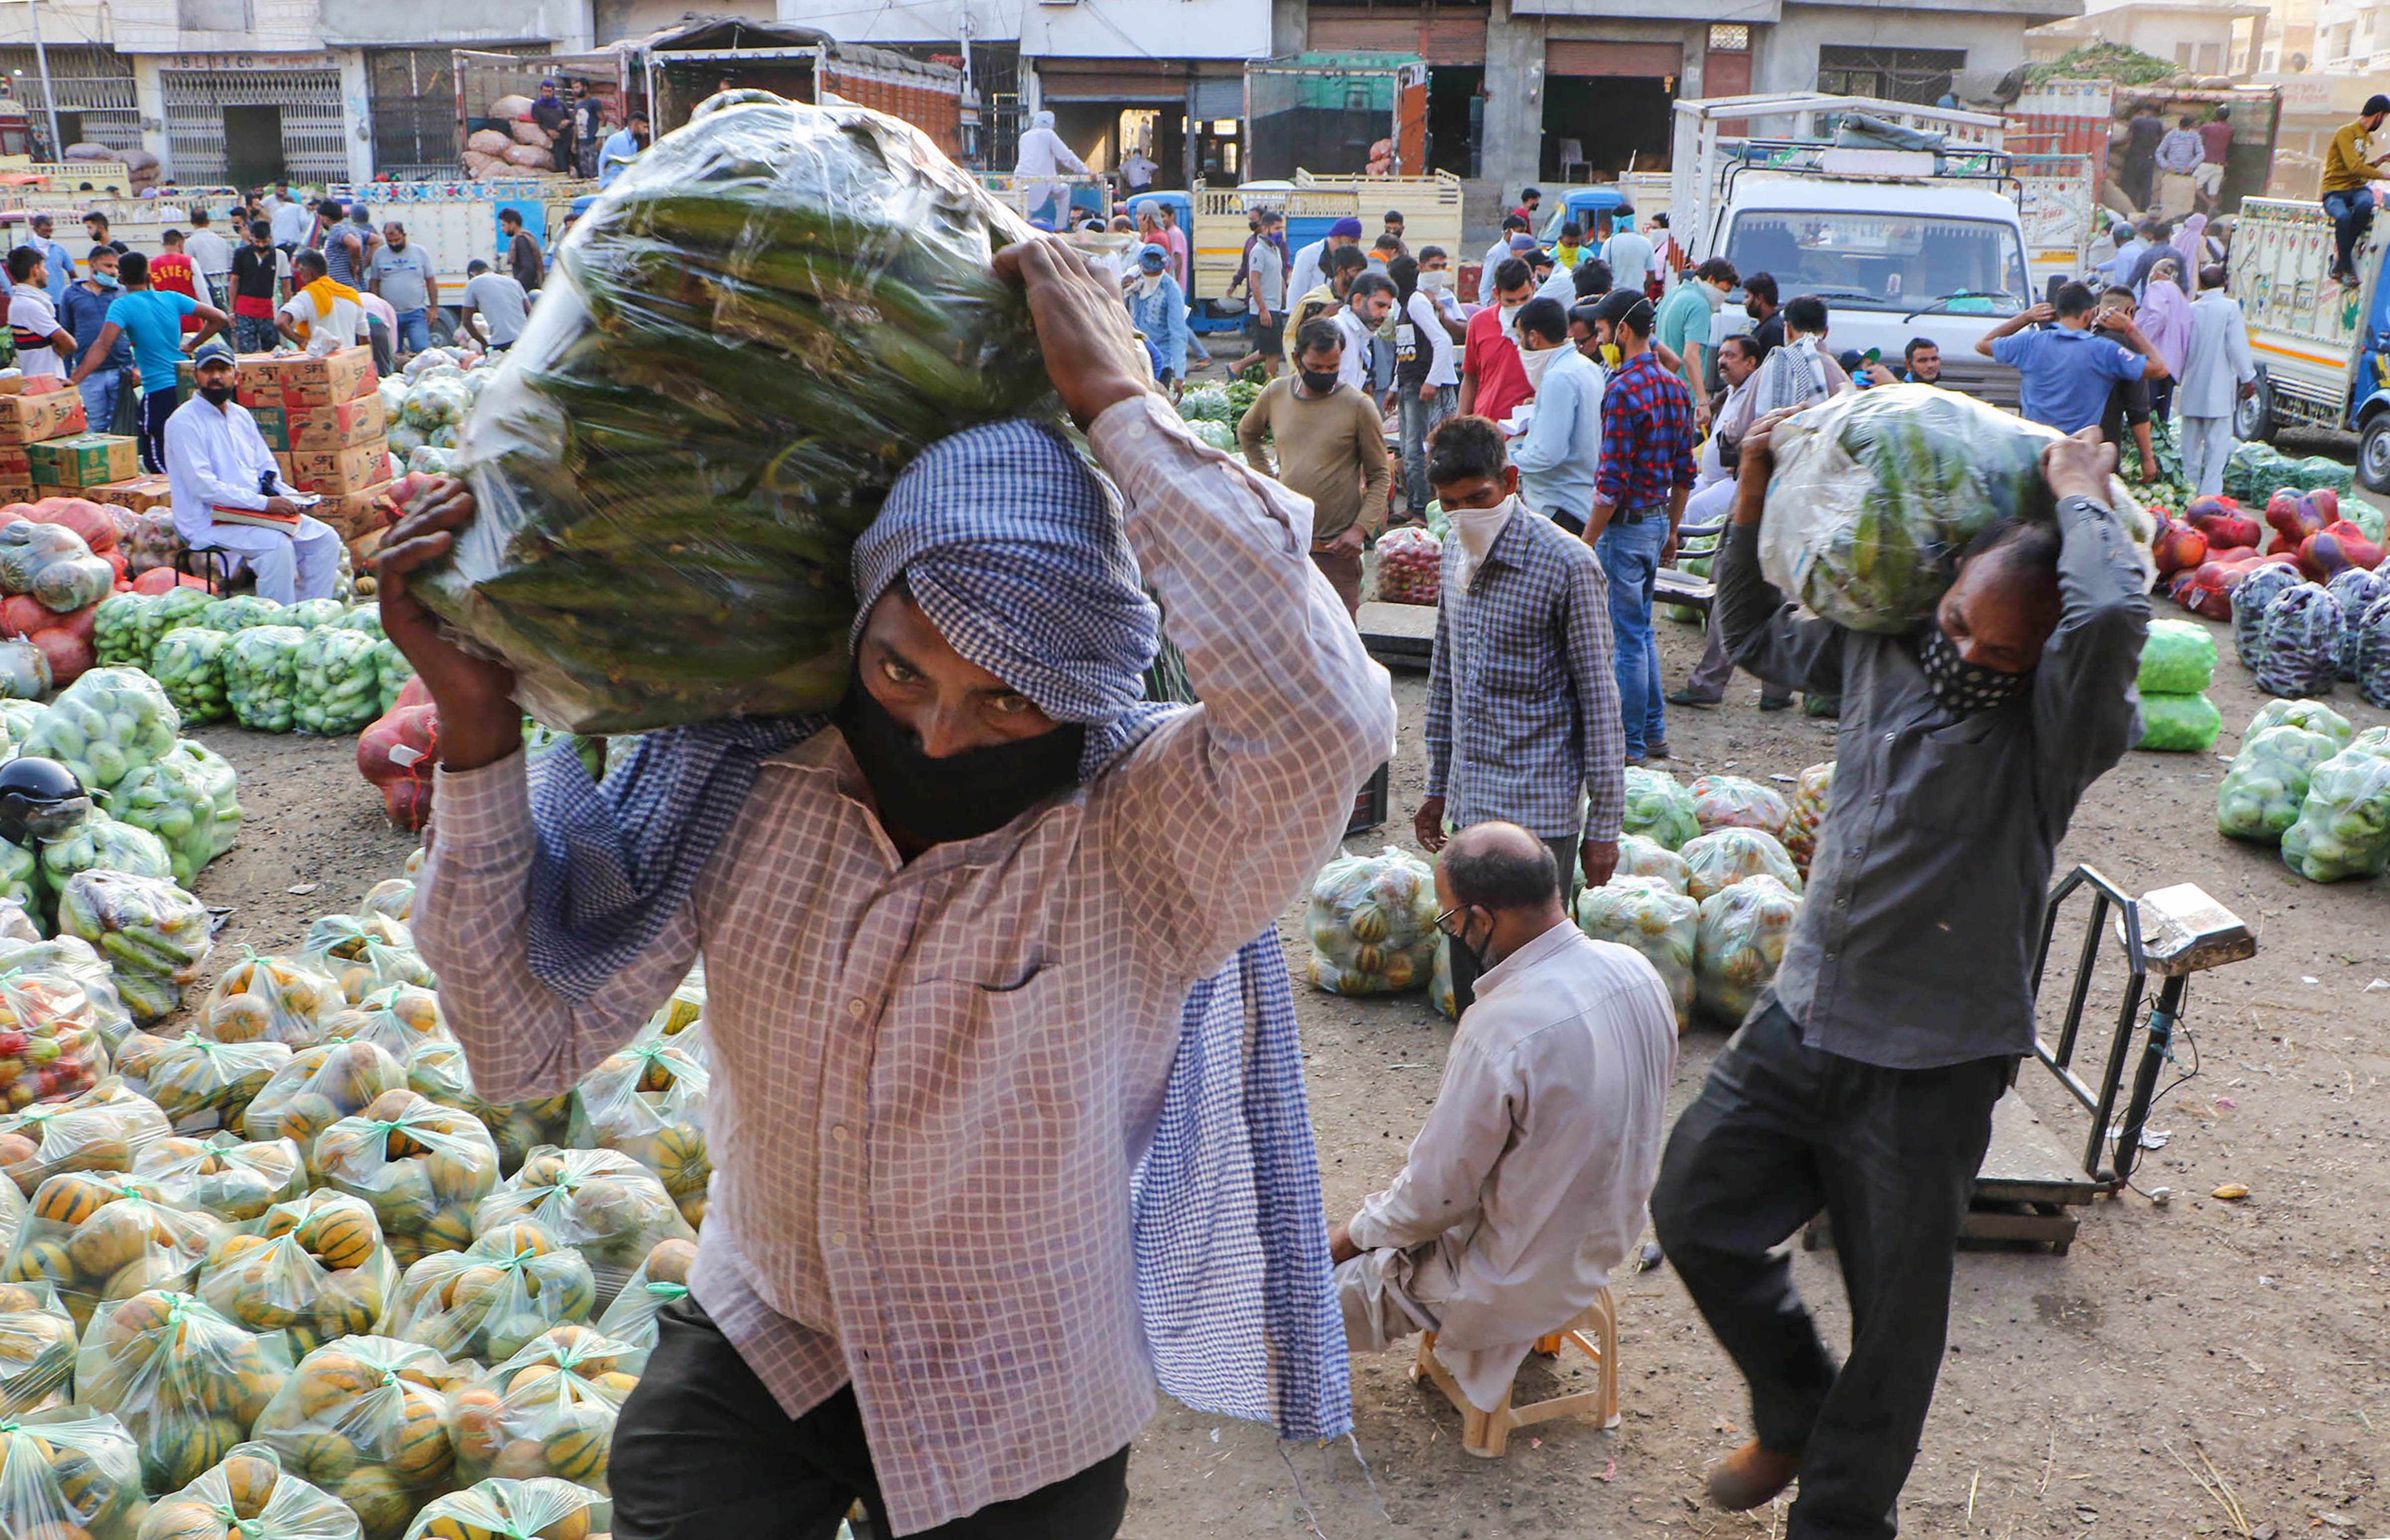 Vendors carry vegetables at a wholesale vegetables market, during ongoing COVID-19 lockdown, in Jammu, Monday, June 15, 2020.